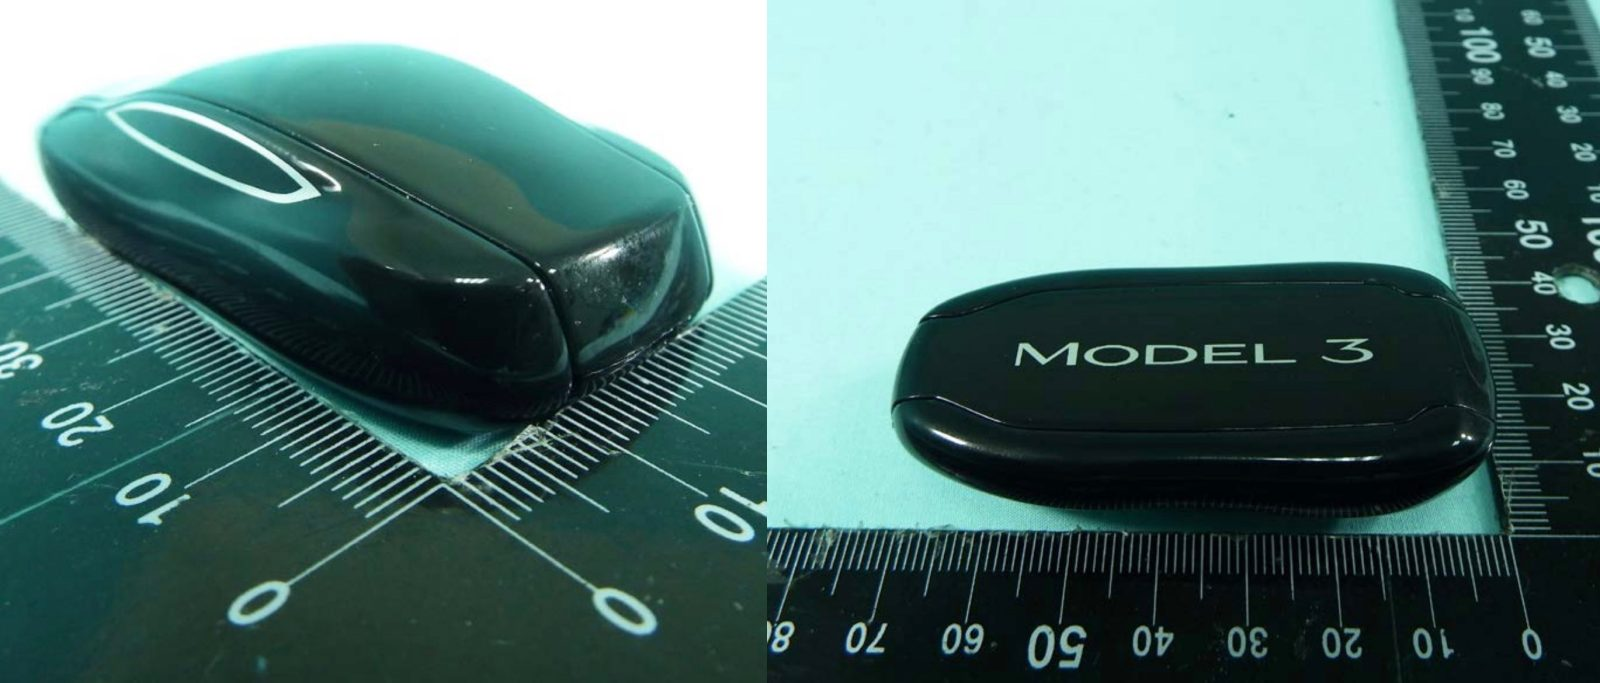 Tesla starts rolling out Model 3 key fob to lucky few owners